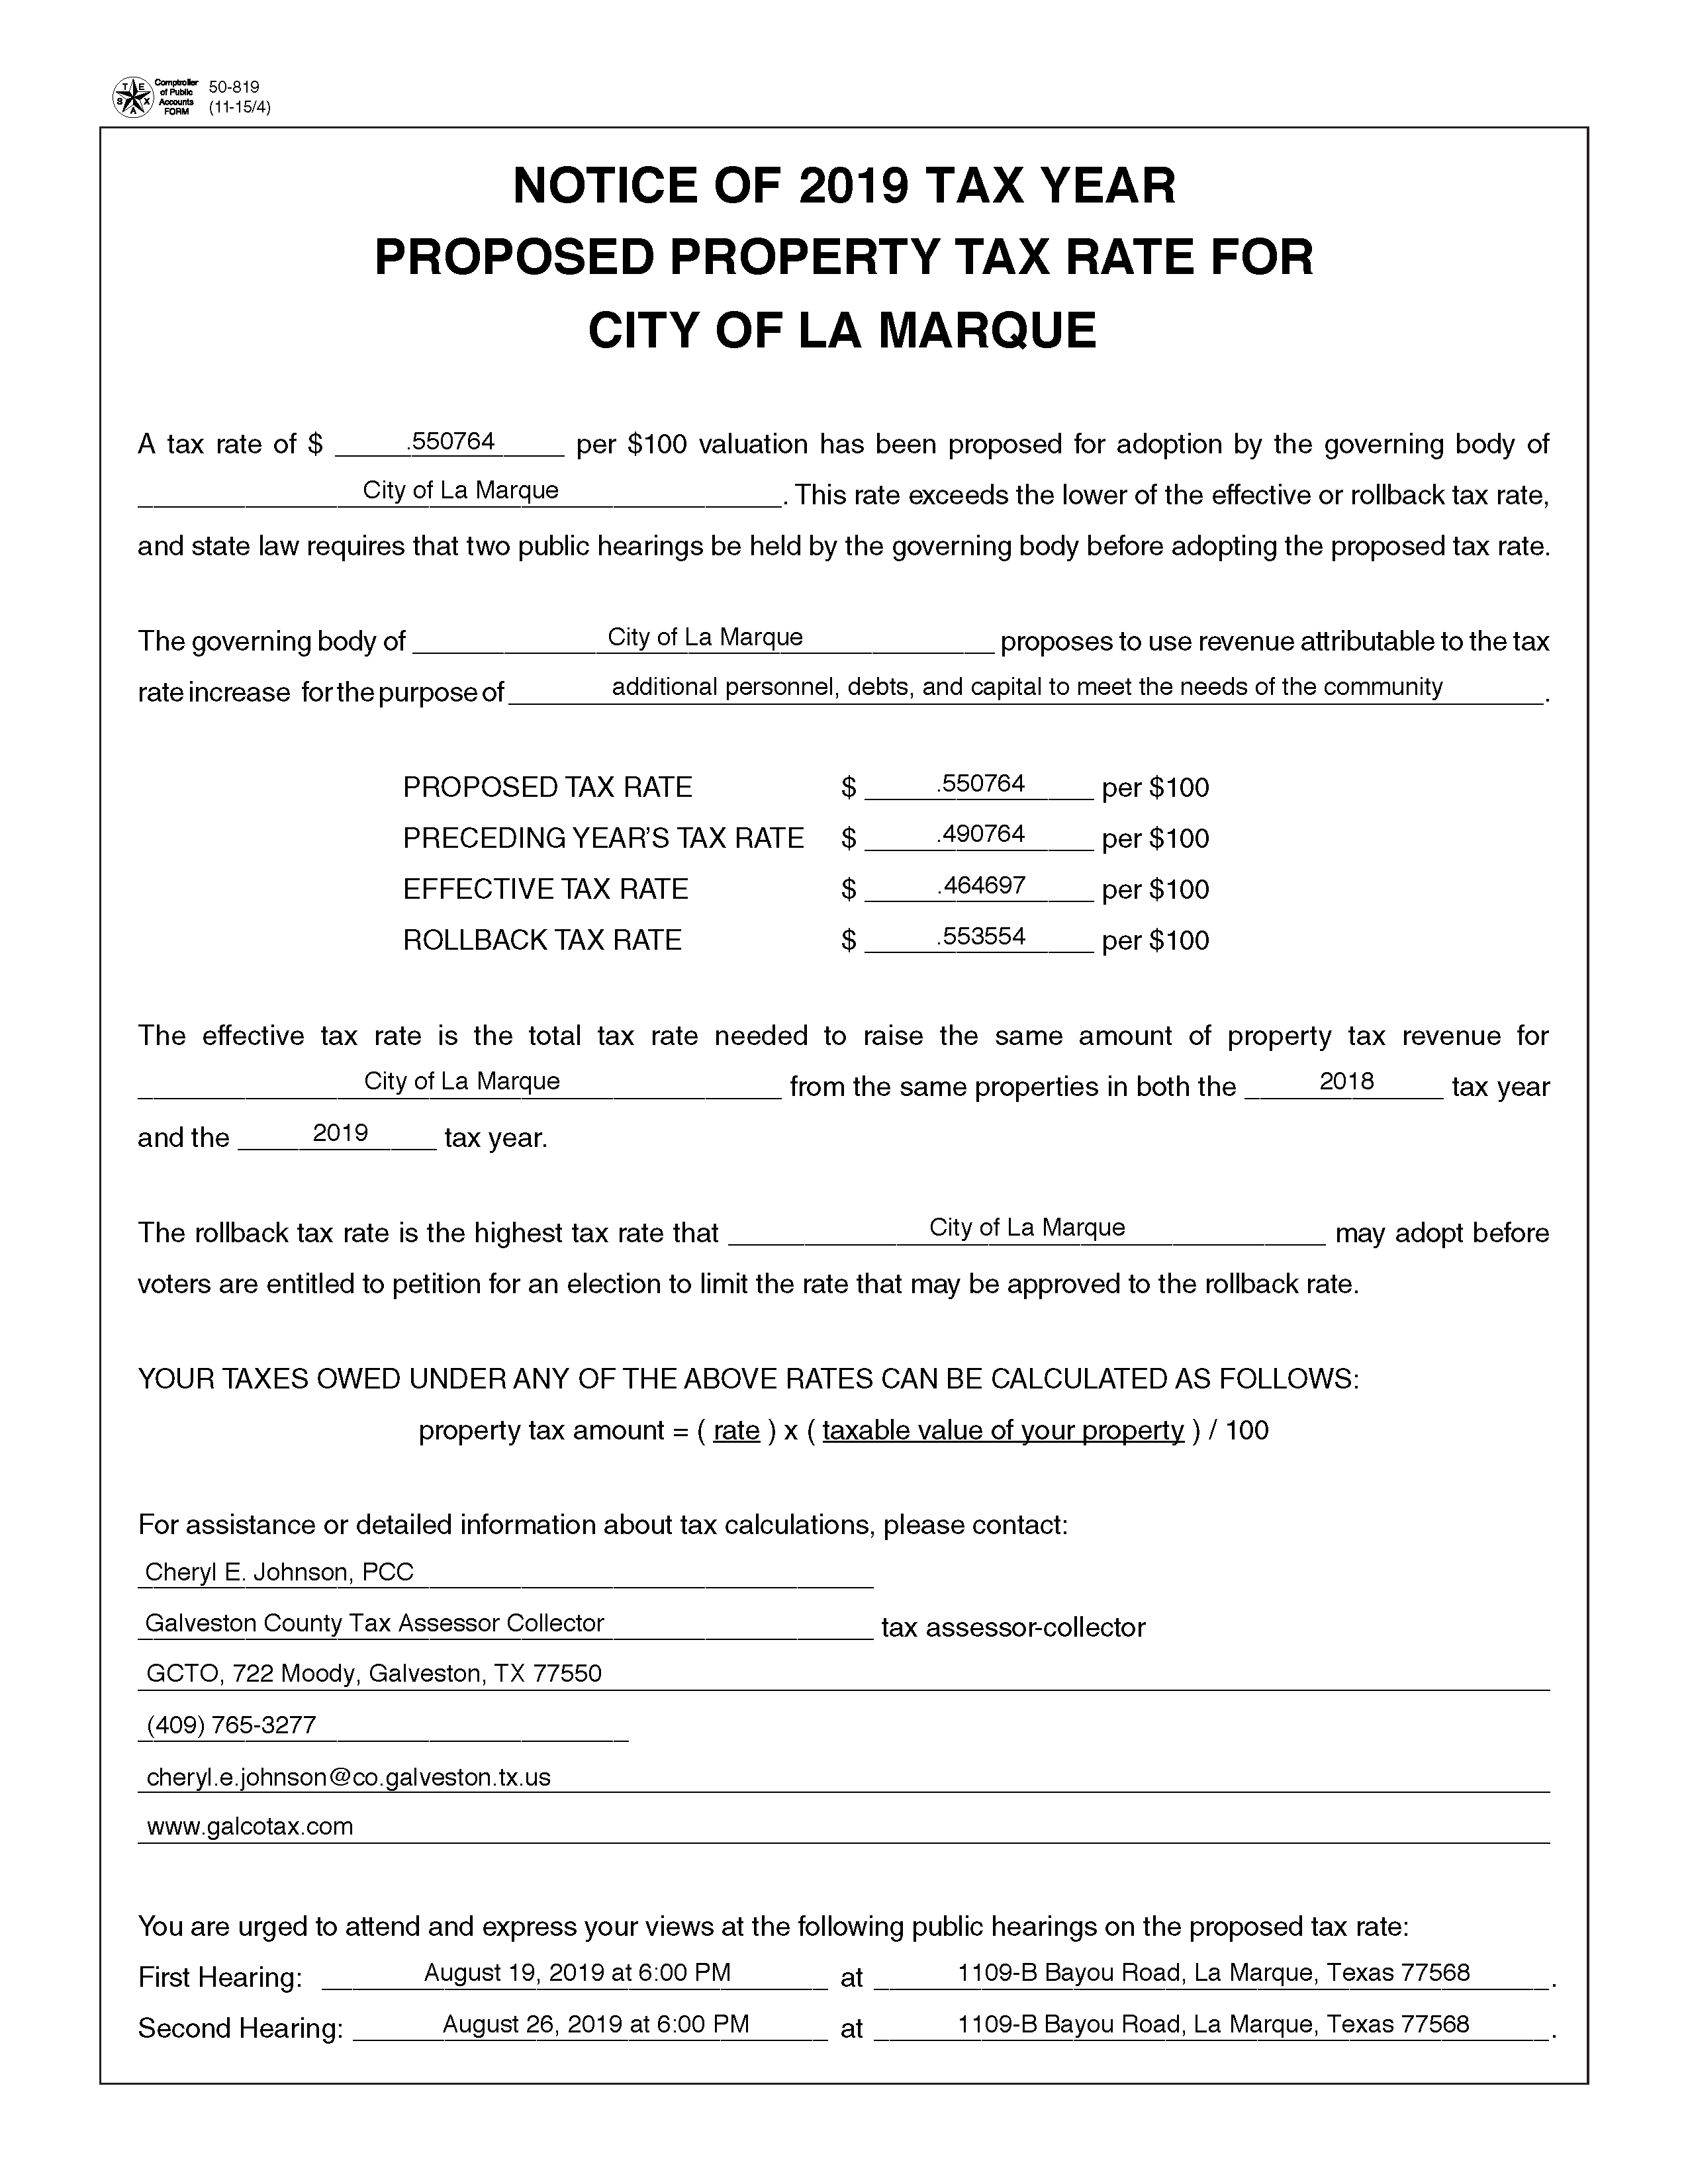 NOTICE OF 2019 TAX YEAR PROPOSED PROPERTY TAX RATE FOR CITY OF LA MARQUE